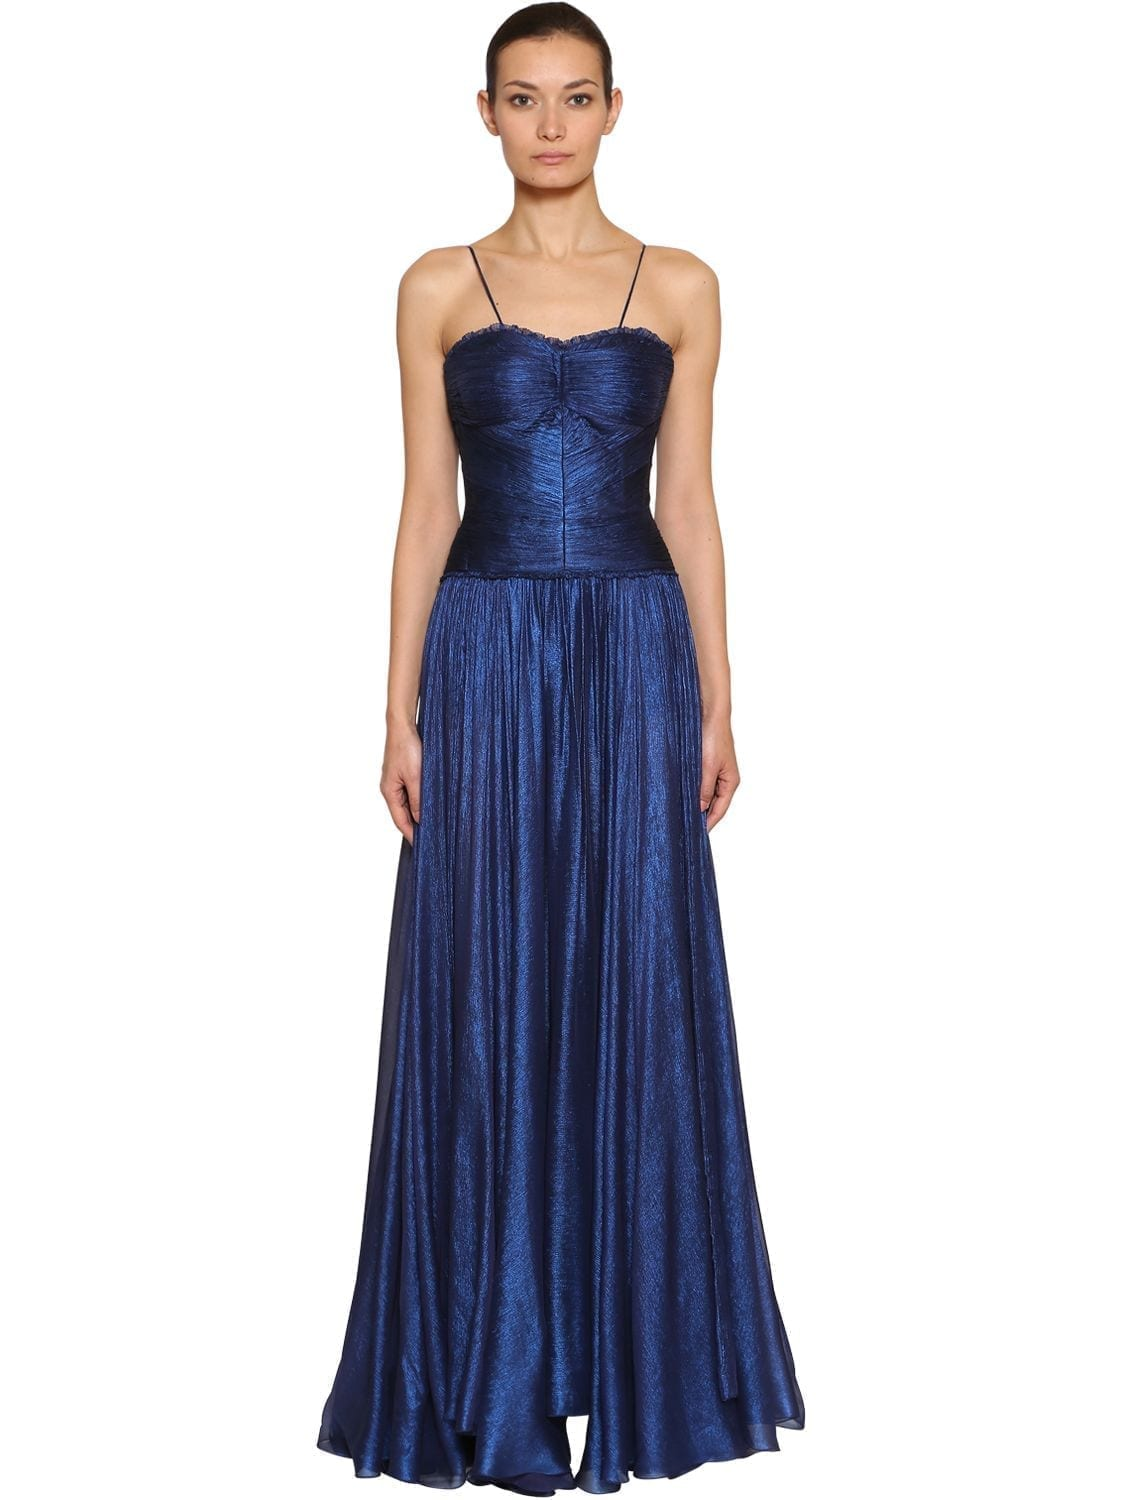 MARIA LUCIA HOHAN Metallic Silk Mousseline Gown Blue Dress